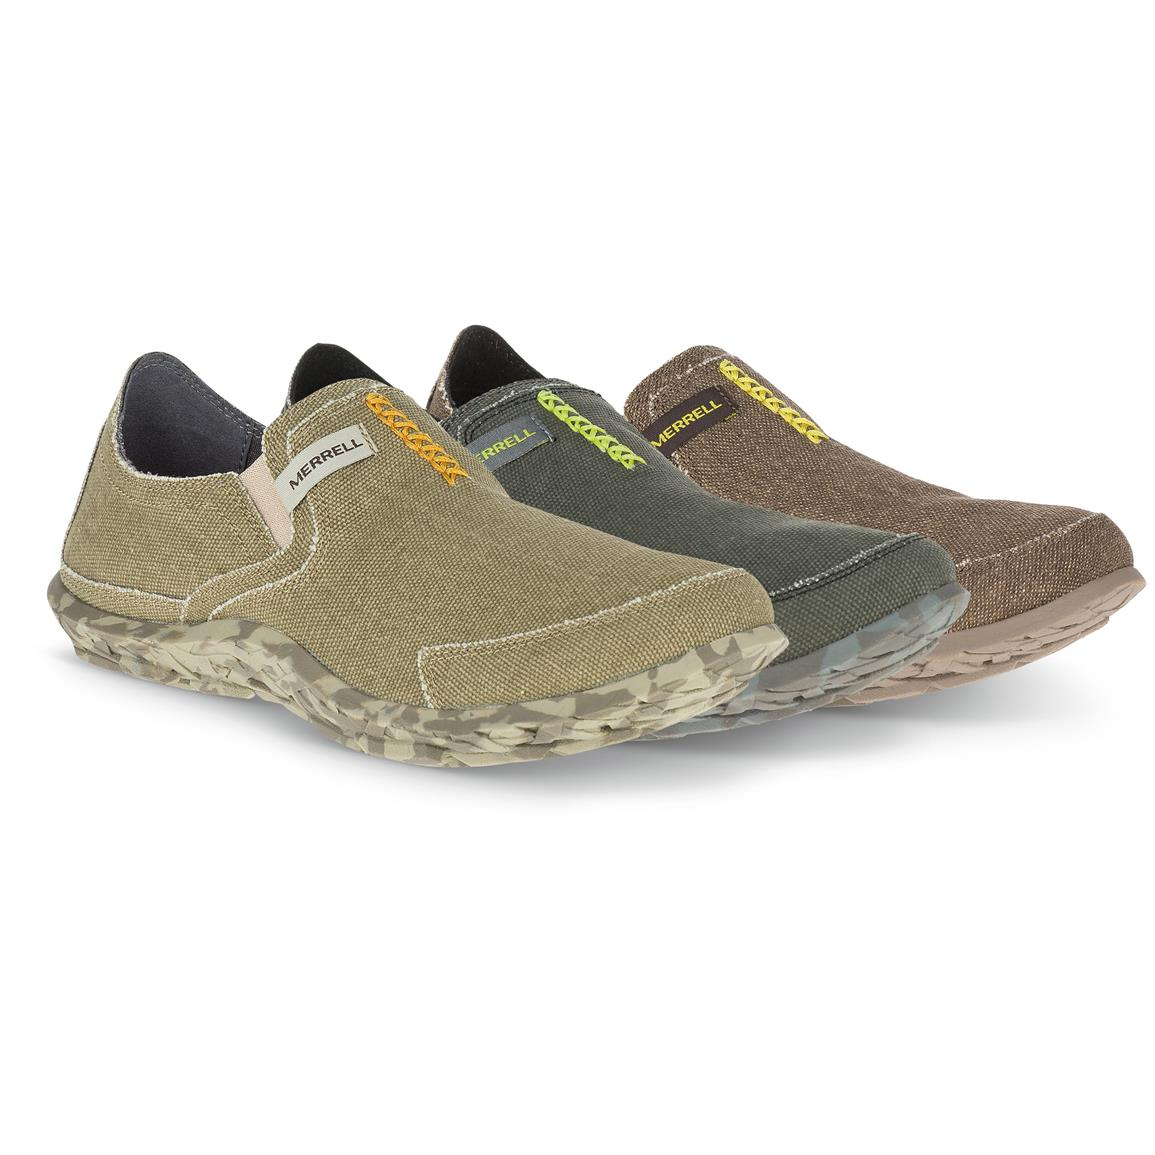 Merrell Men's Slipper Shoes